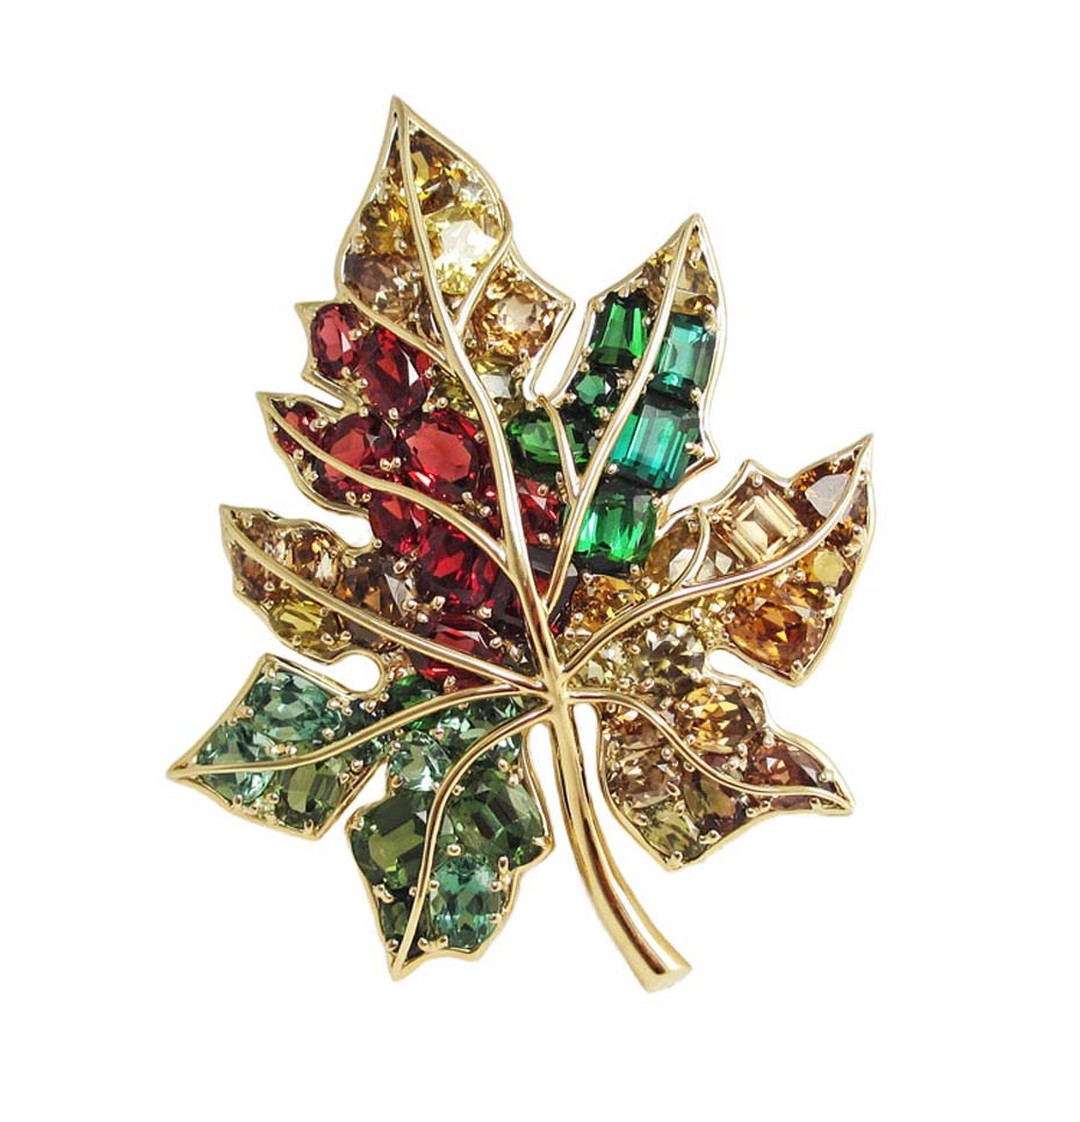 The 75th Anniversary Collection Verdura Leaf brooch was inspired by Verdura's first trip to America, where the legendary designer was immediately inspired by the vibrant coulored leaves of autumn.